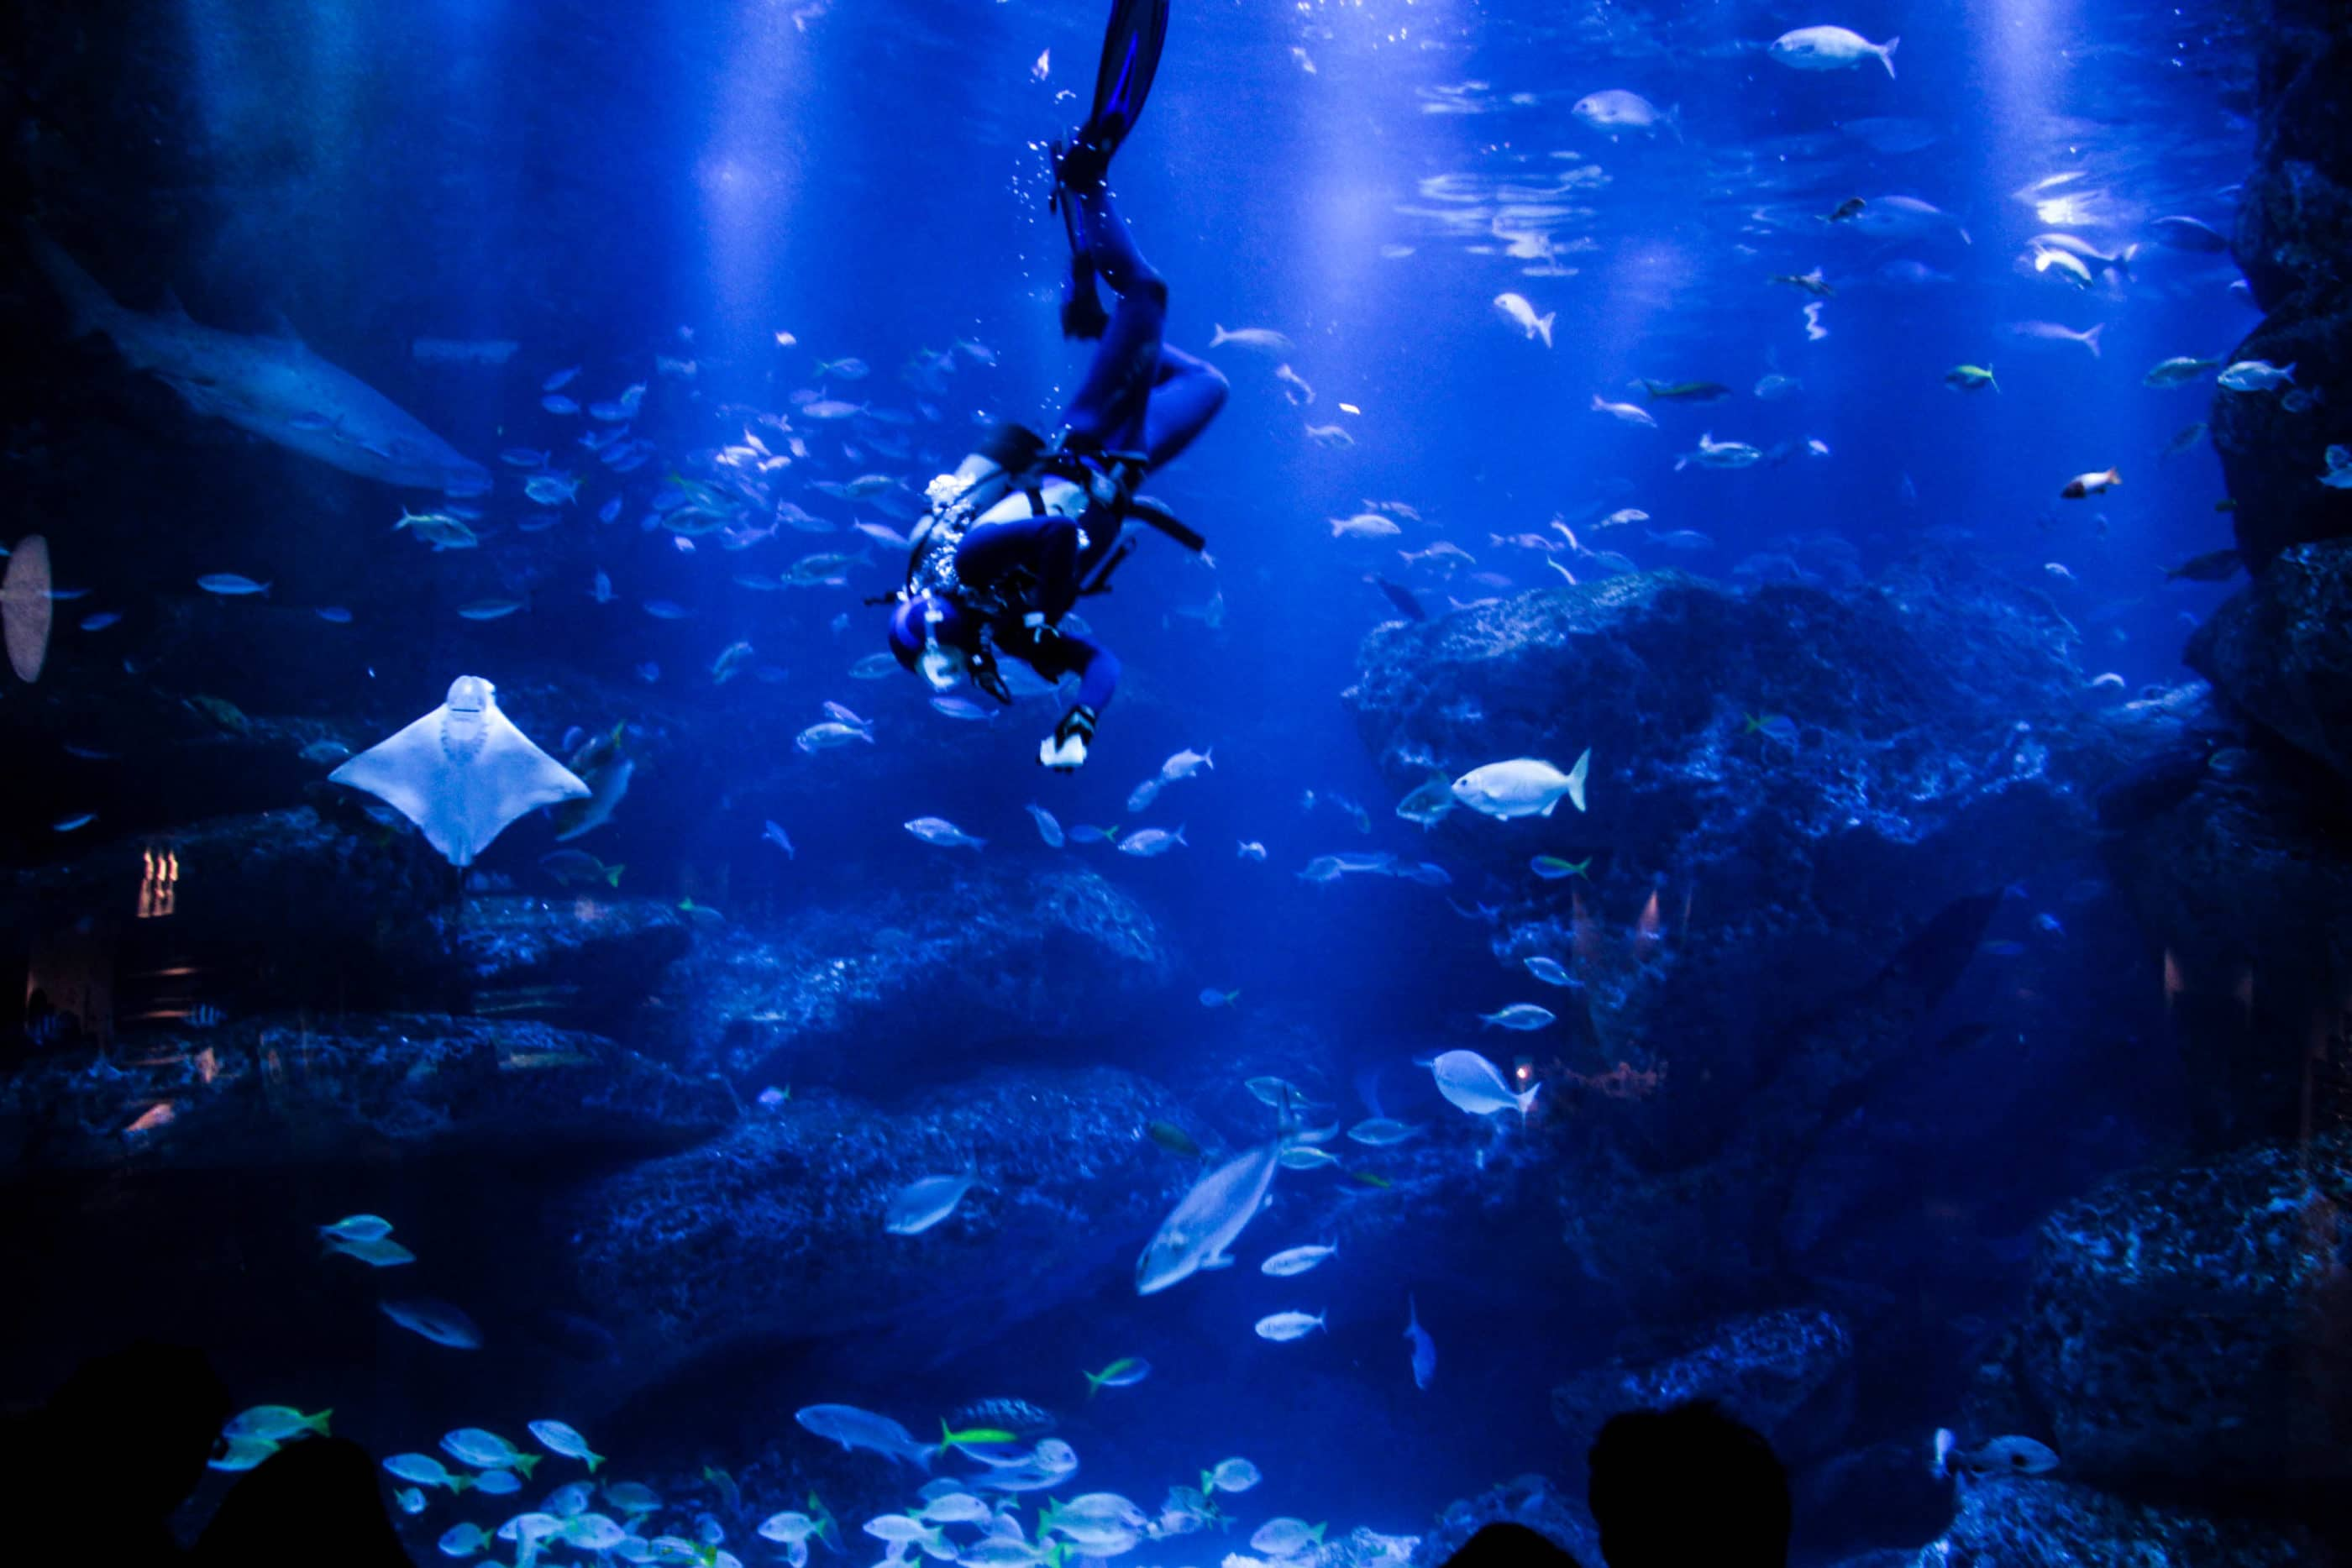 Diver in a tank with rays and fish at Sumida Aquarium.